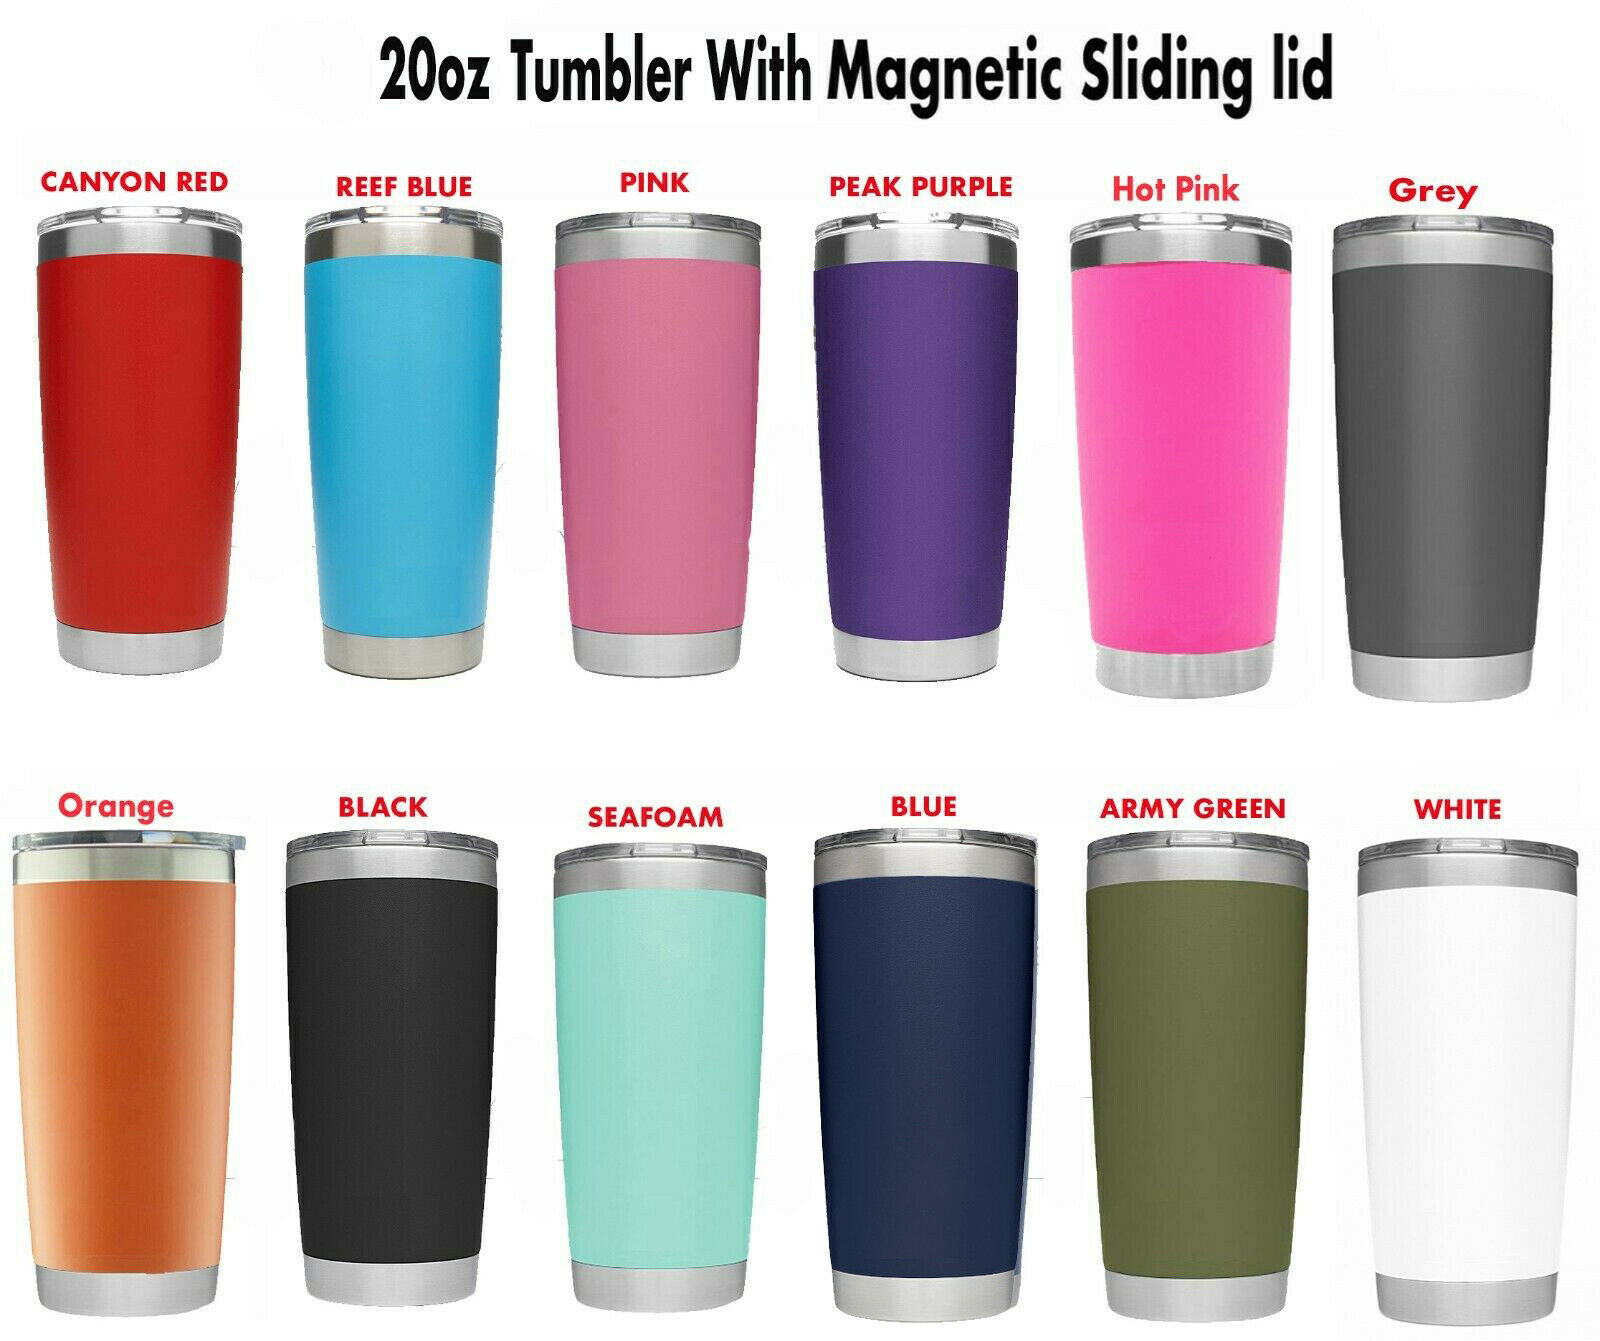 Starbucks Copper Colored Stainless Steel Travel Mug With Black Rubber Grip 20oz For Sale Online Ebay,Different Types Of Flower Arrangements